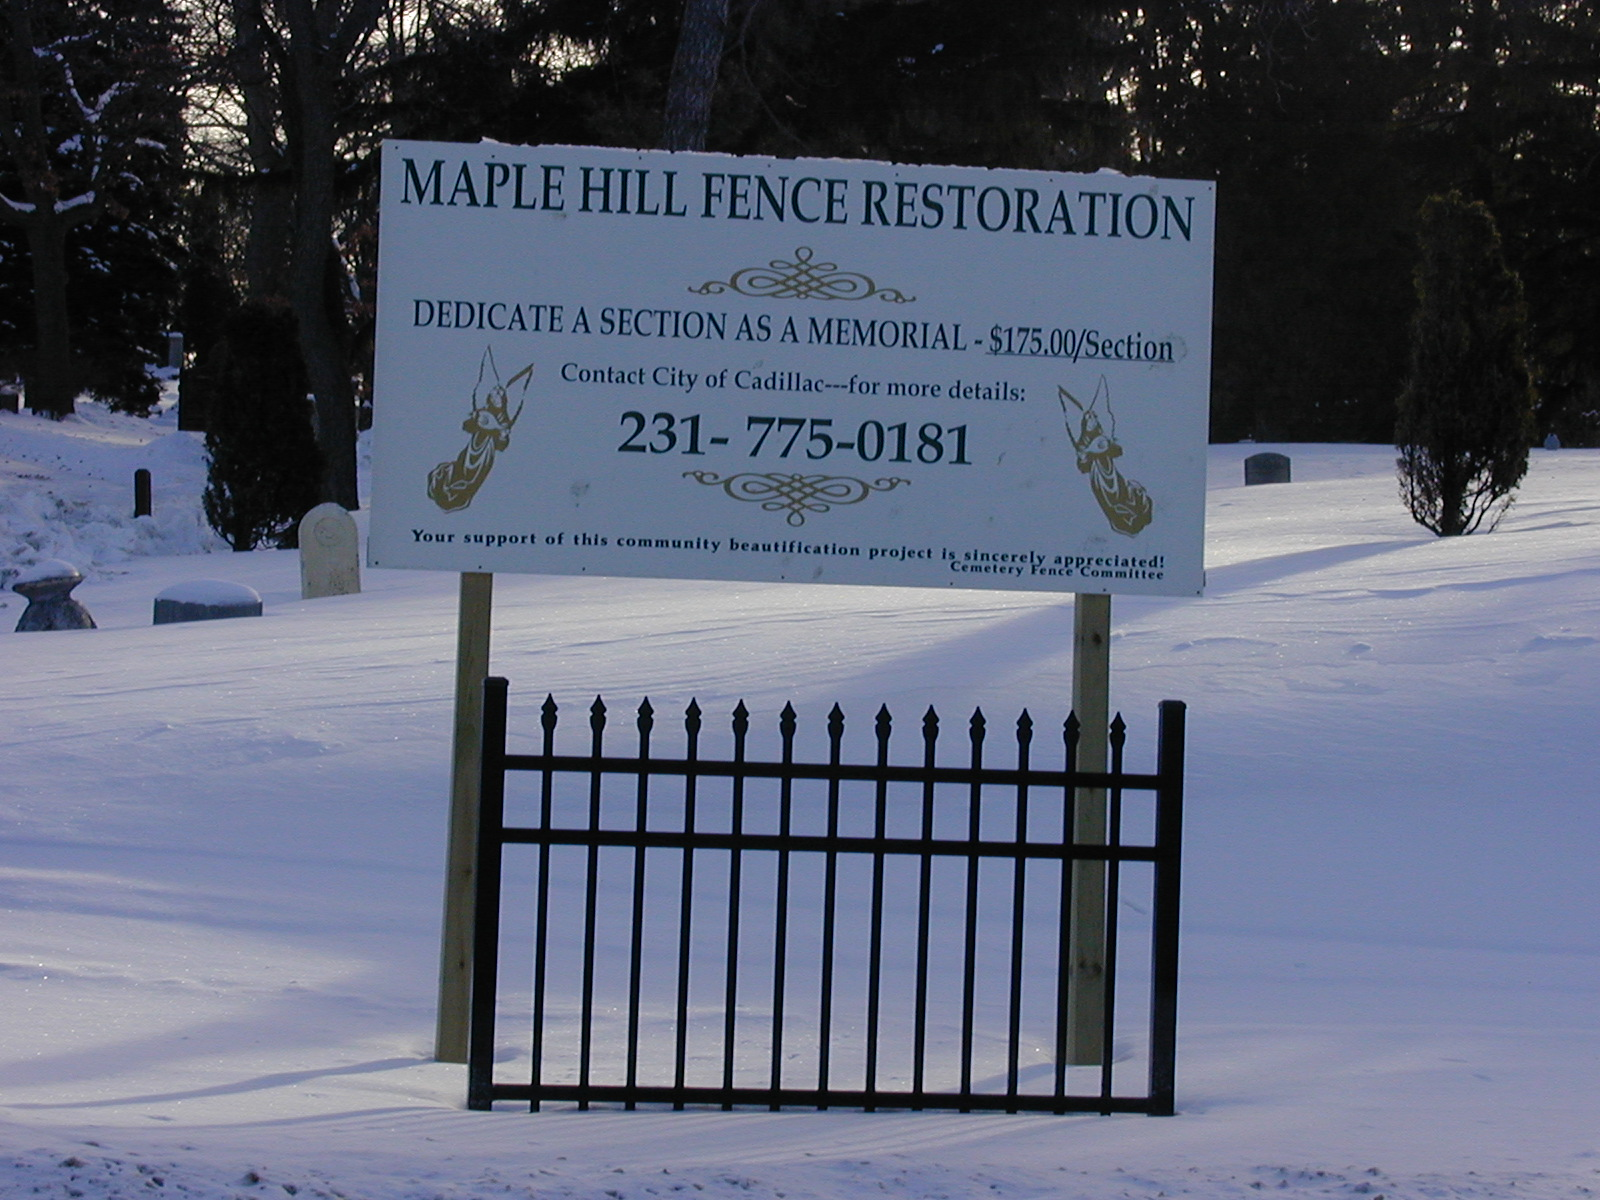 Cadillac, MI - Official Website - Fence Donation